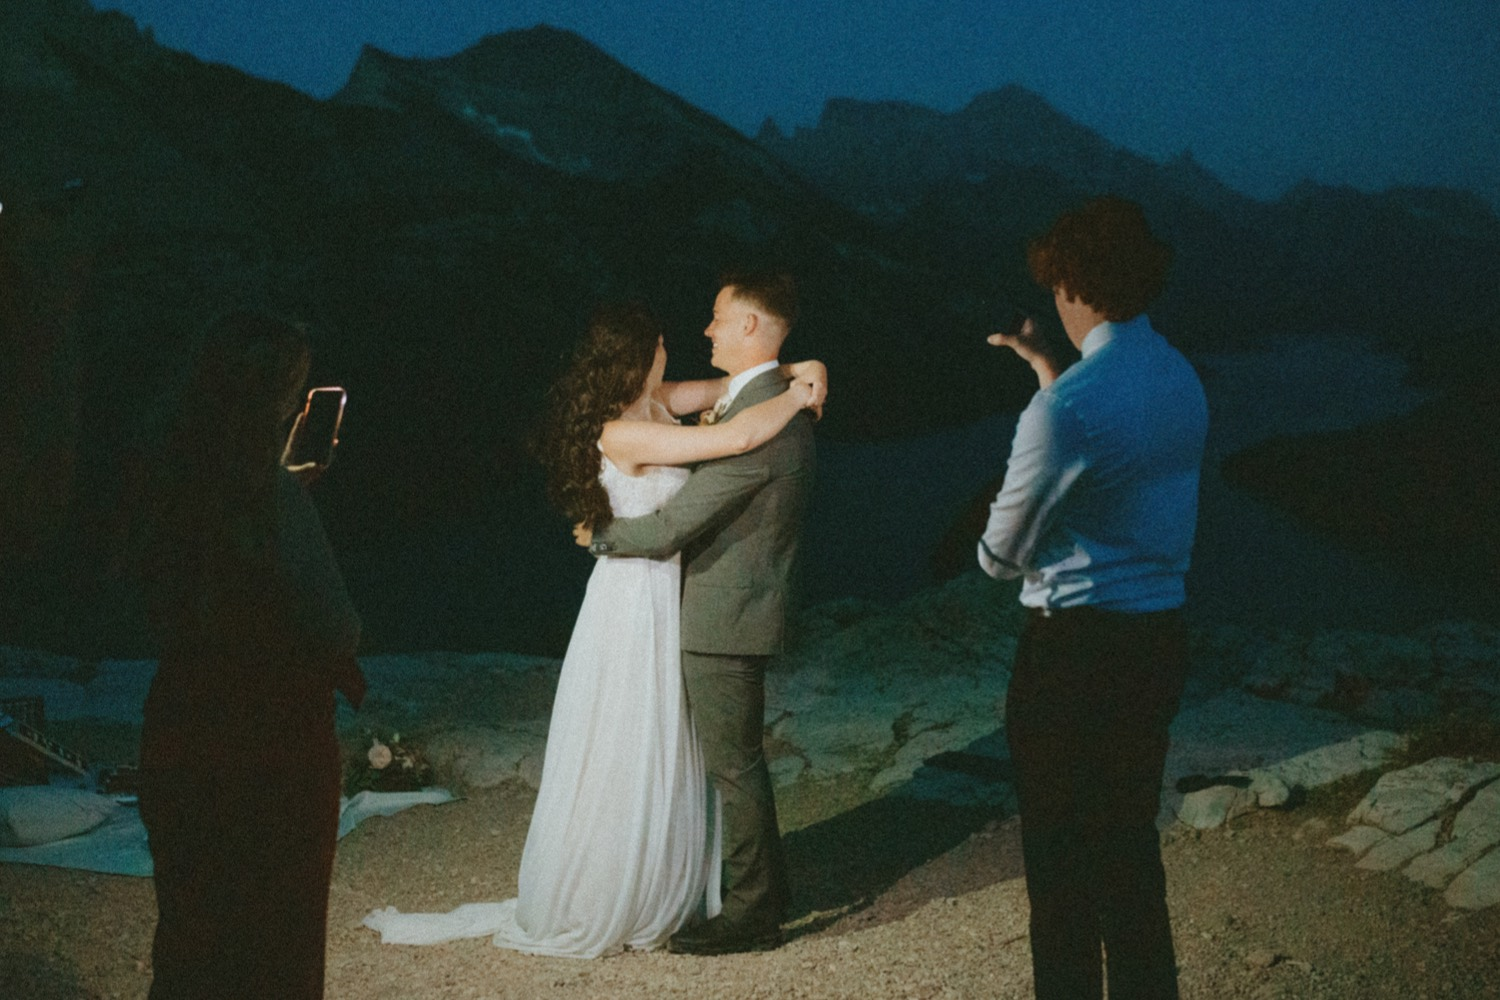 Waterton Wedding Adventurous Mountain Elopement style in the beautiful Canadian Rocky Mountains picture of couples first dance under the stars right after their elopement ceremony on a mountain top